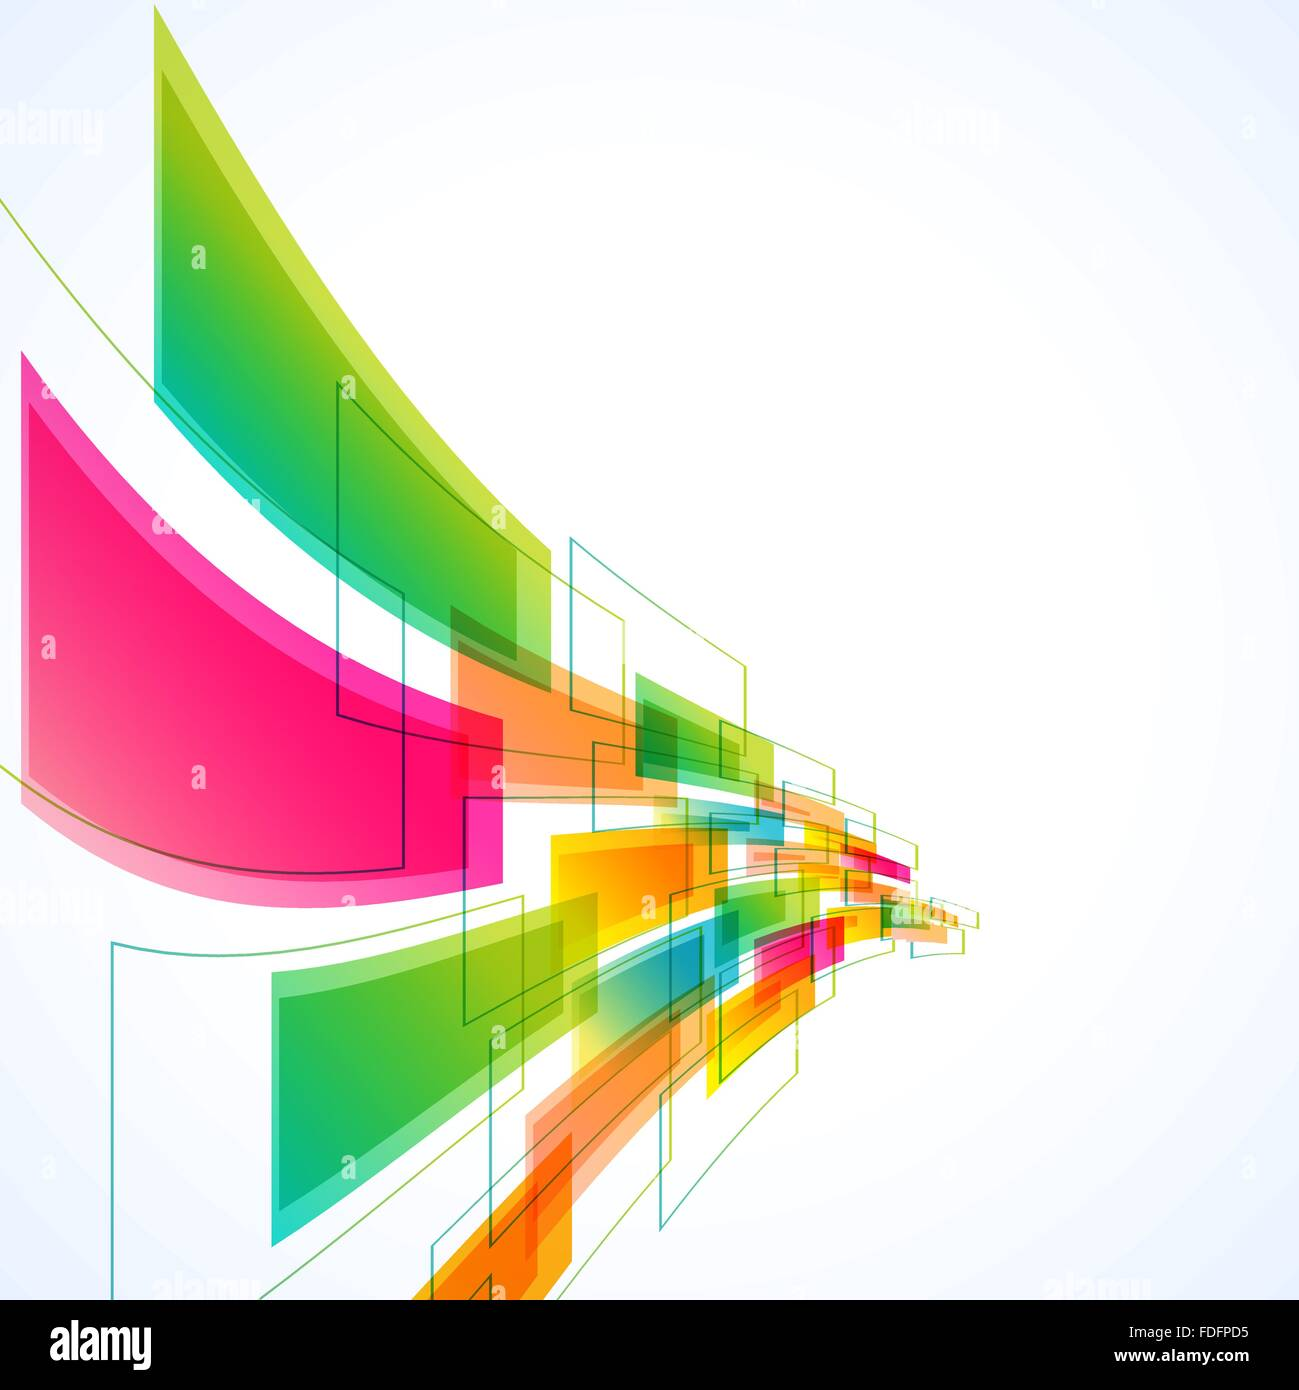 abstract background with transparent waving shapes. vector - Stock Image